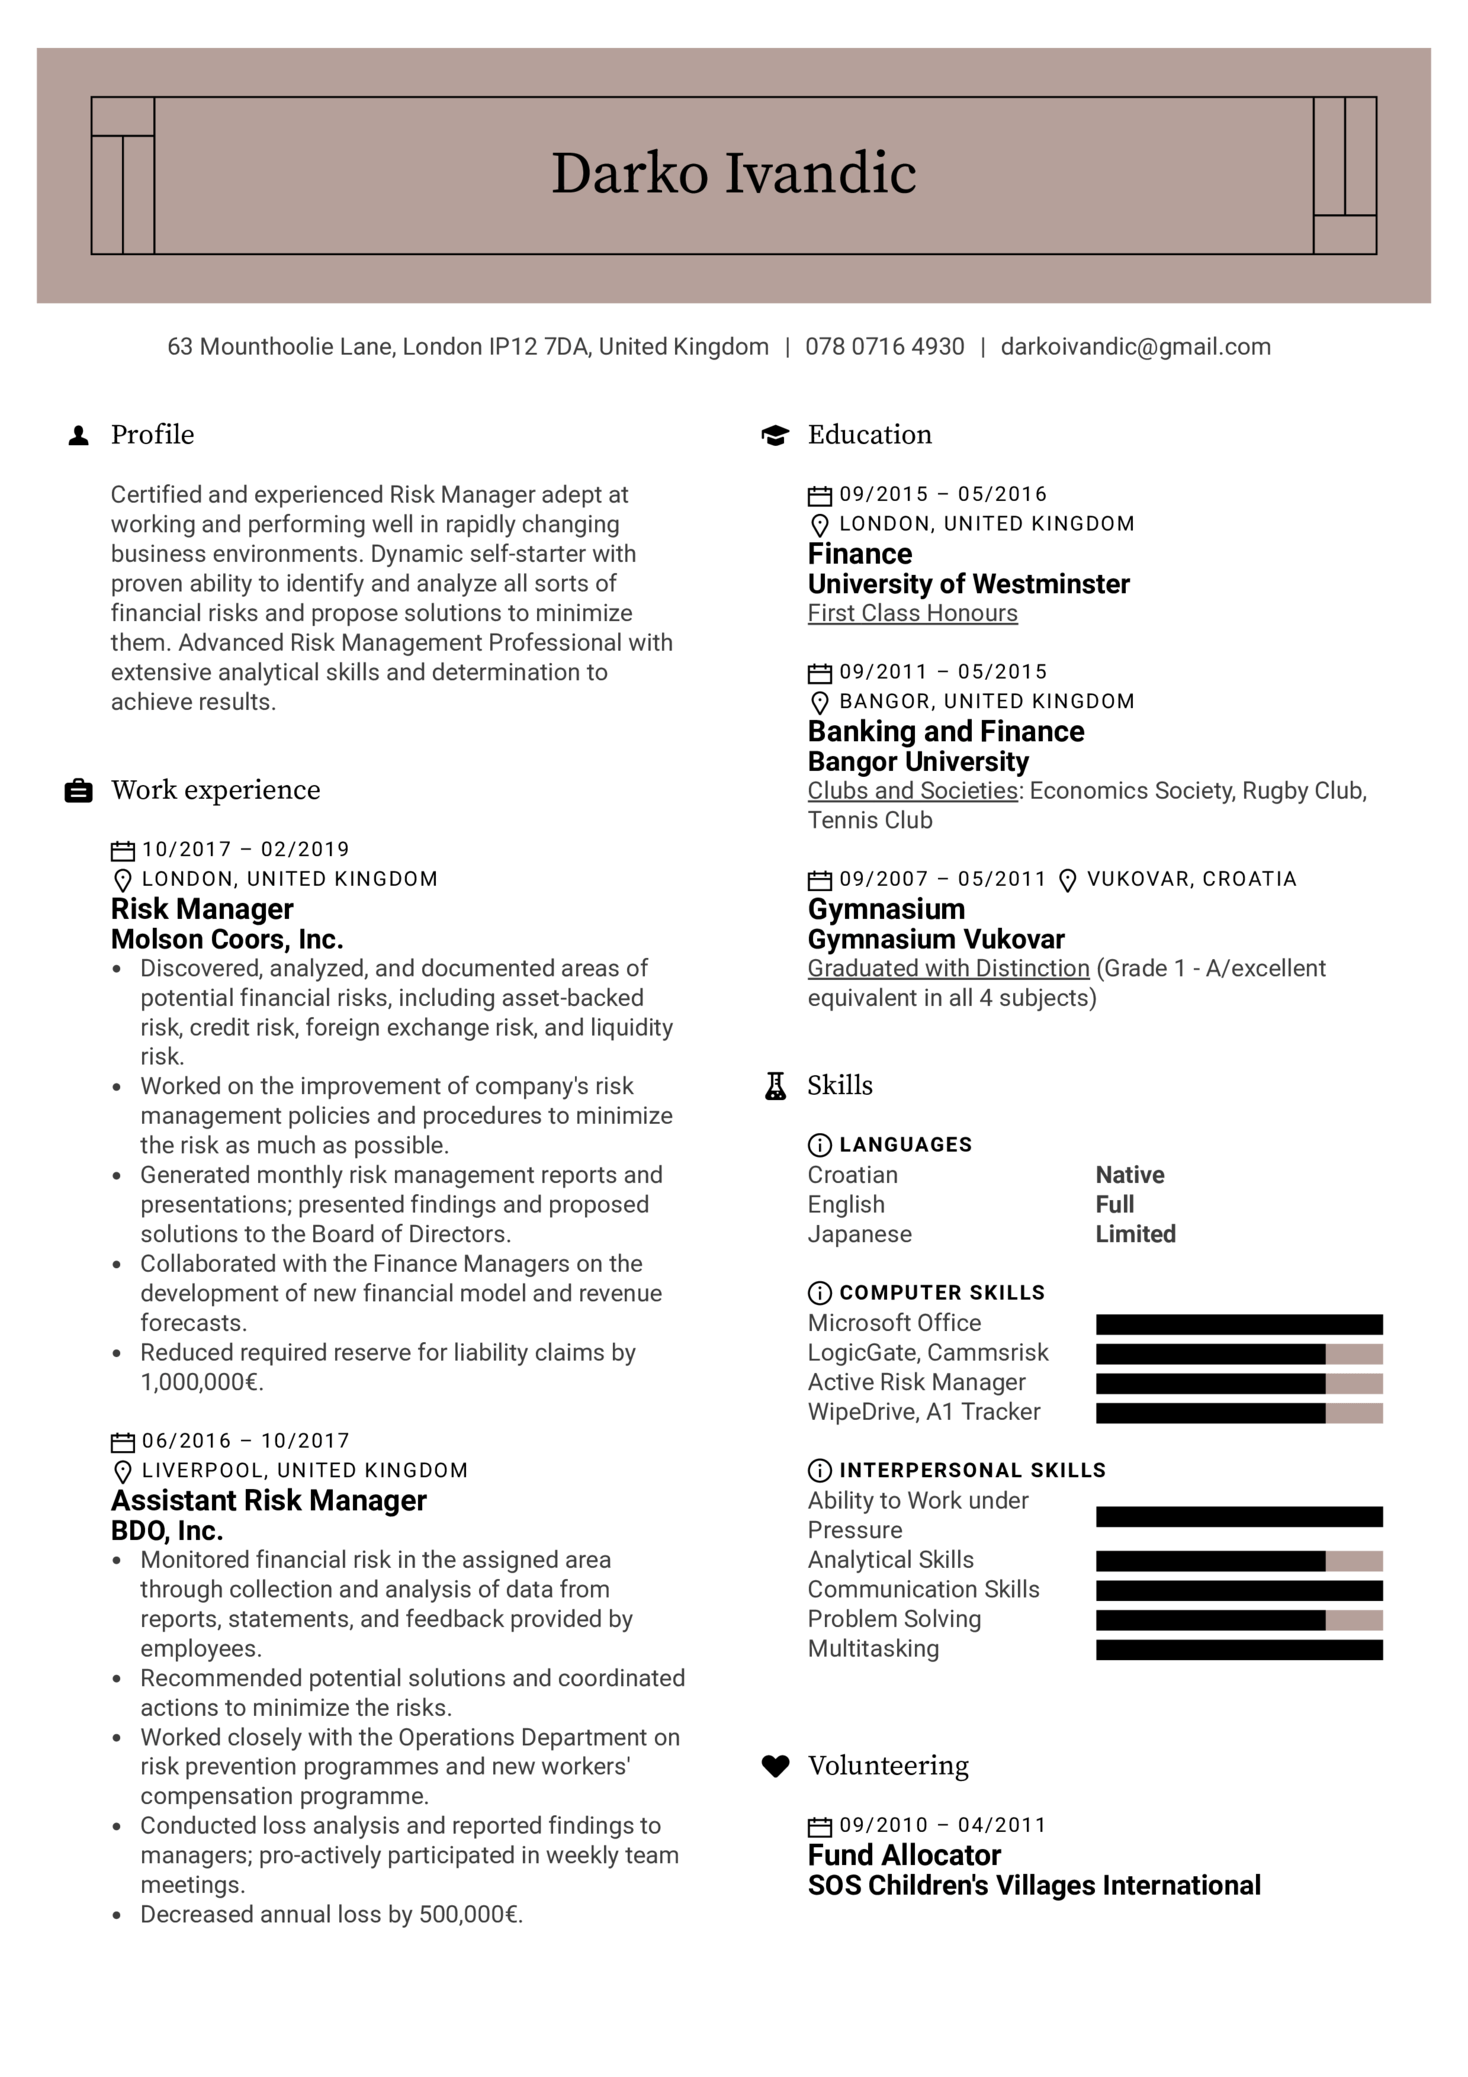 Risk Manager Resume Example (Part 1)